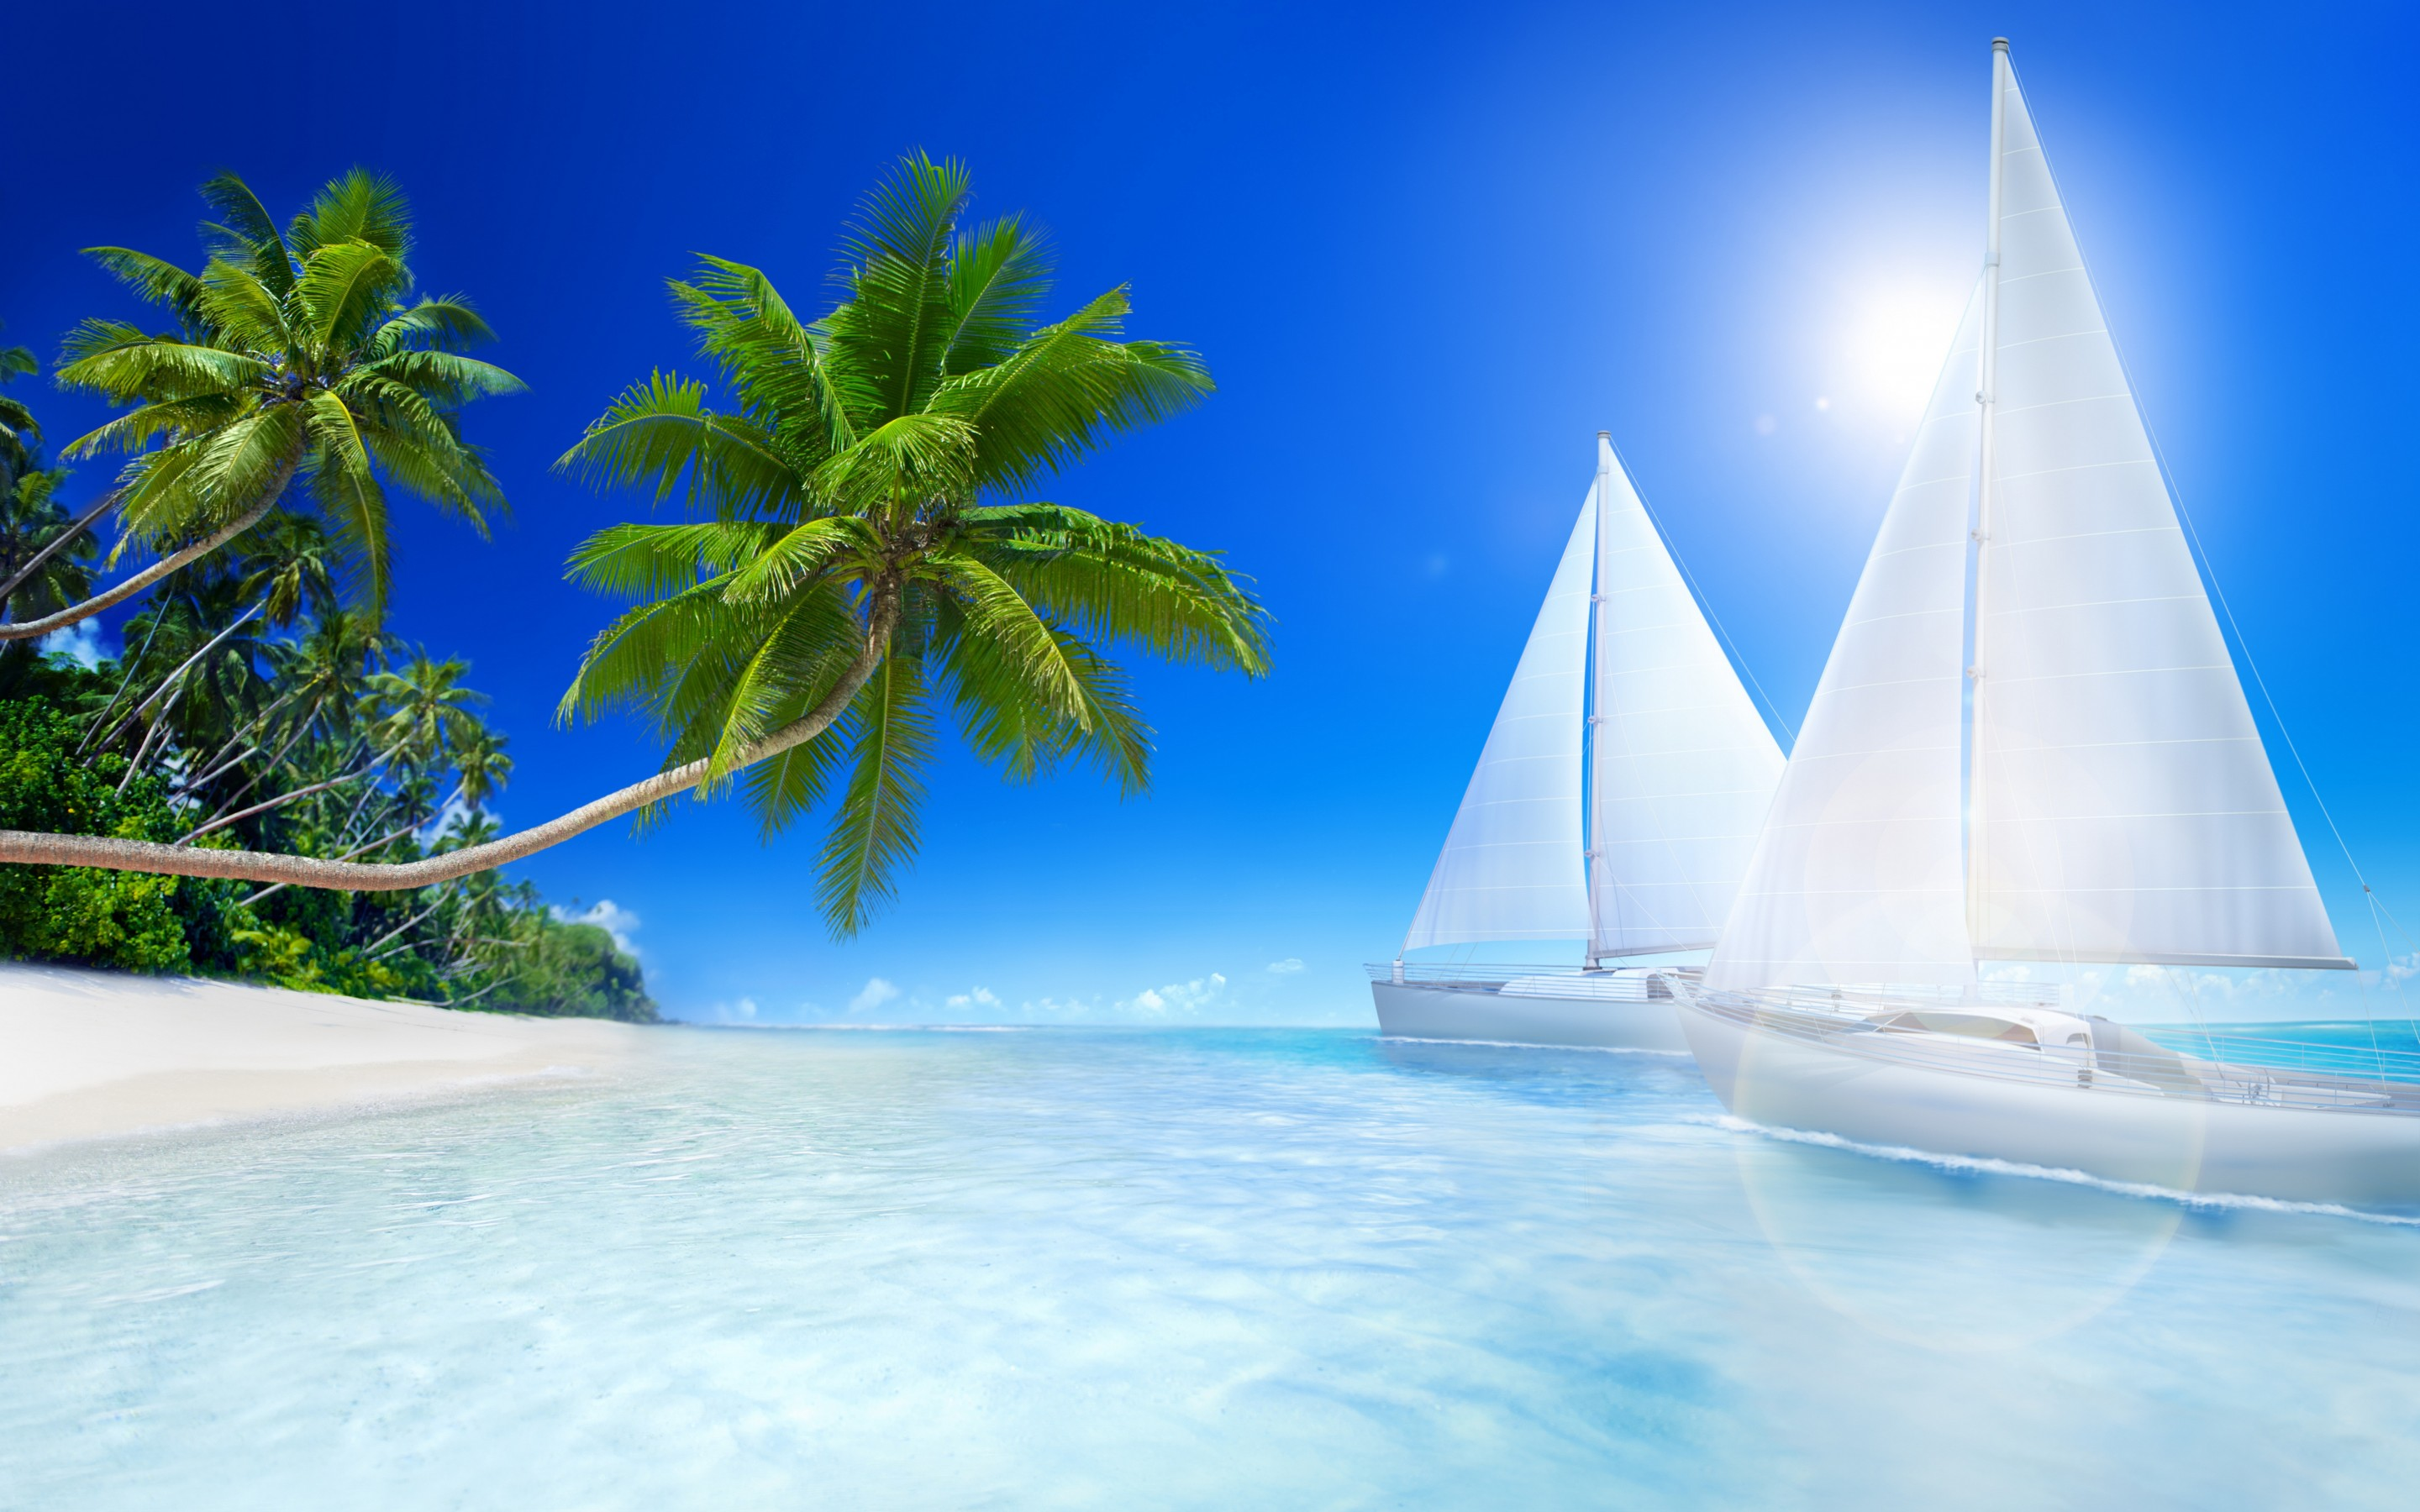 Wallpapers Of Beaches